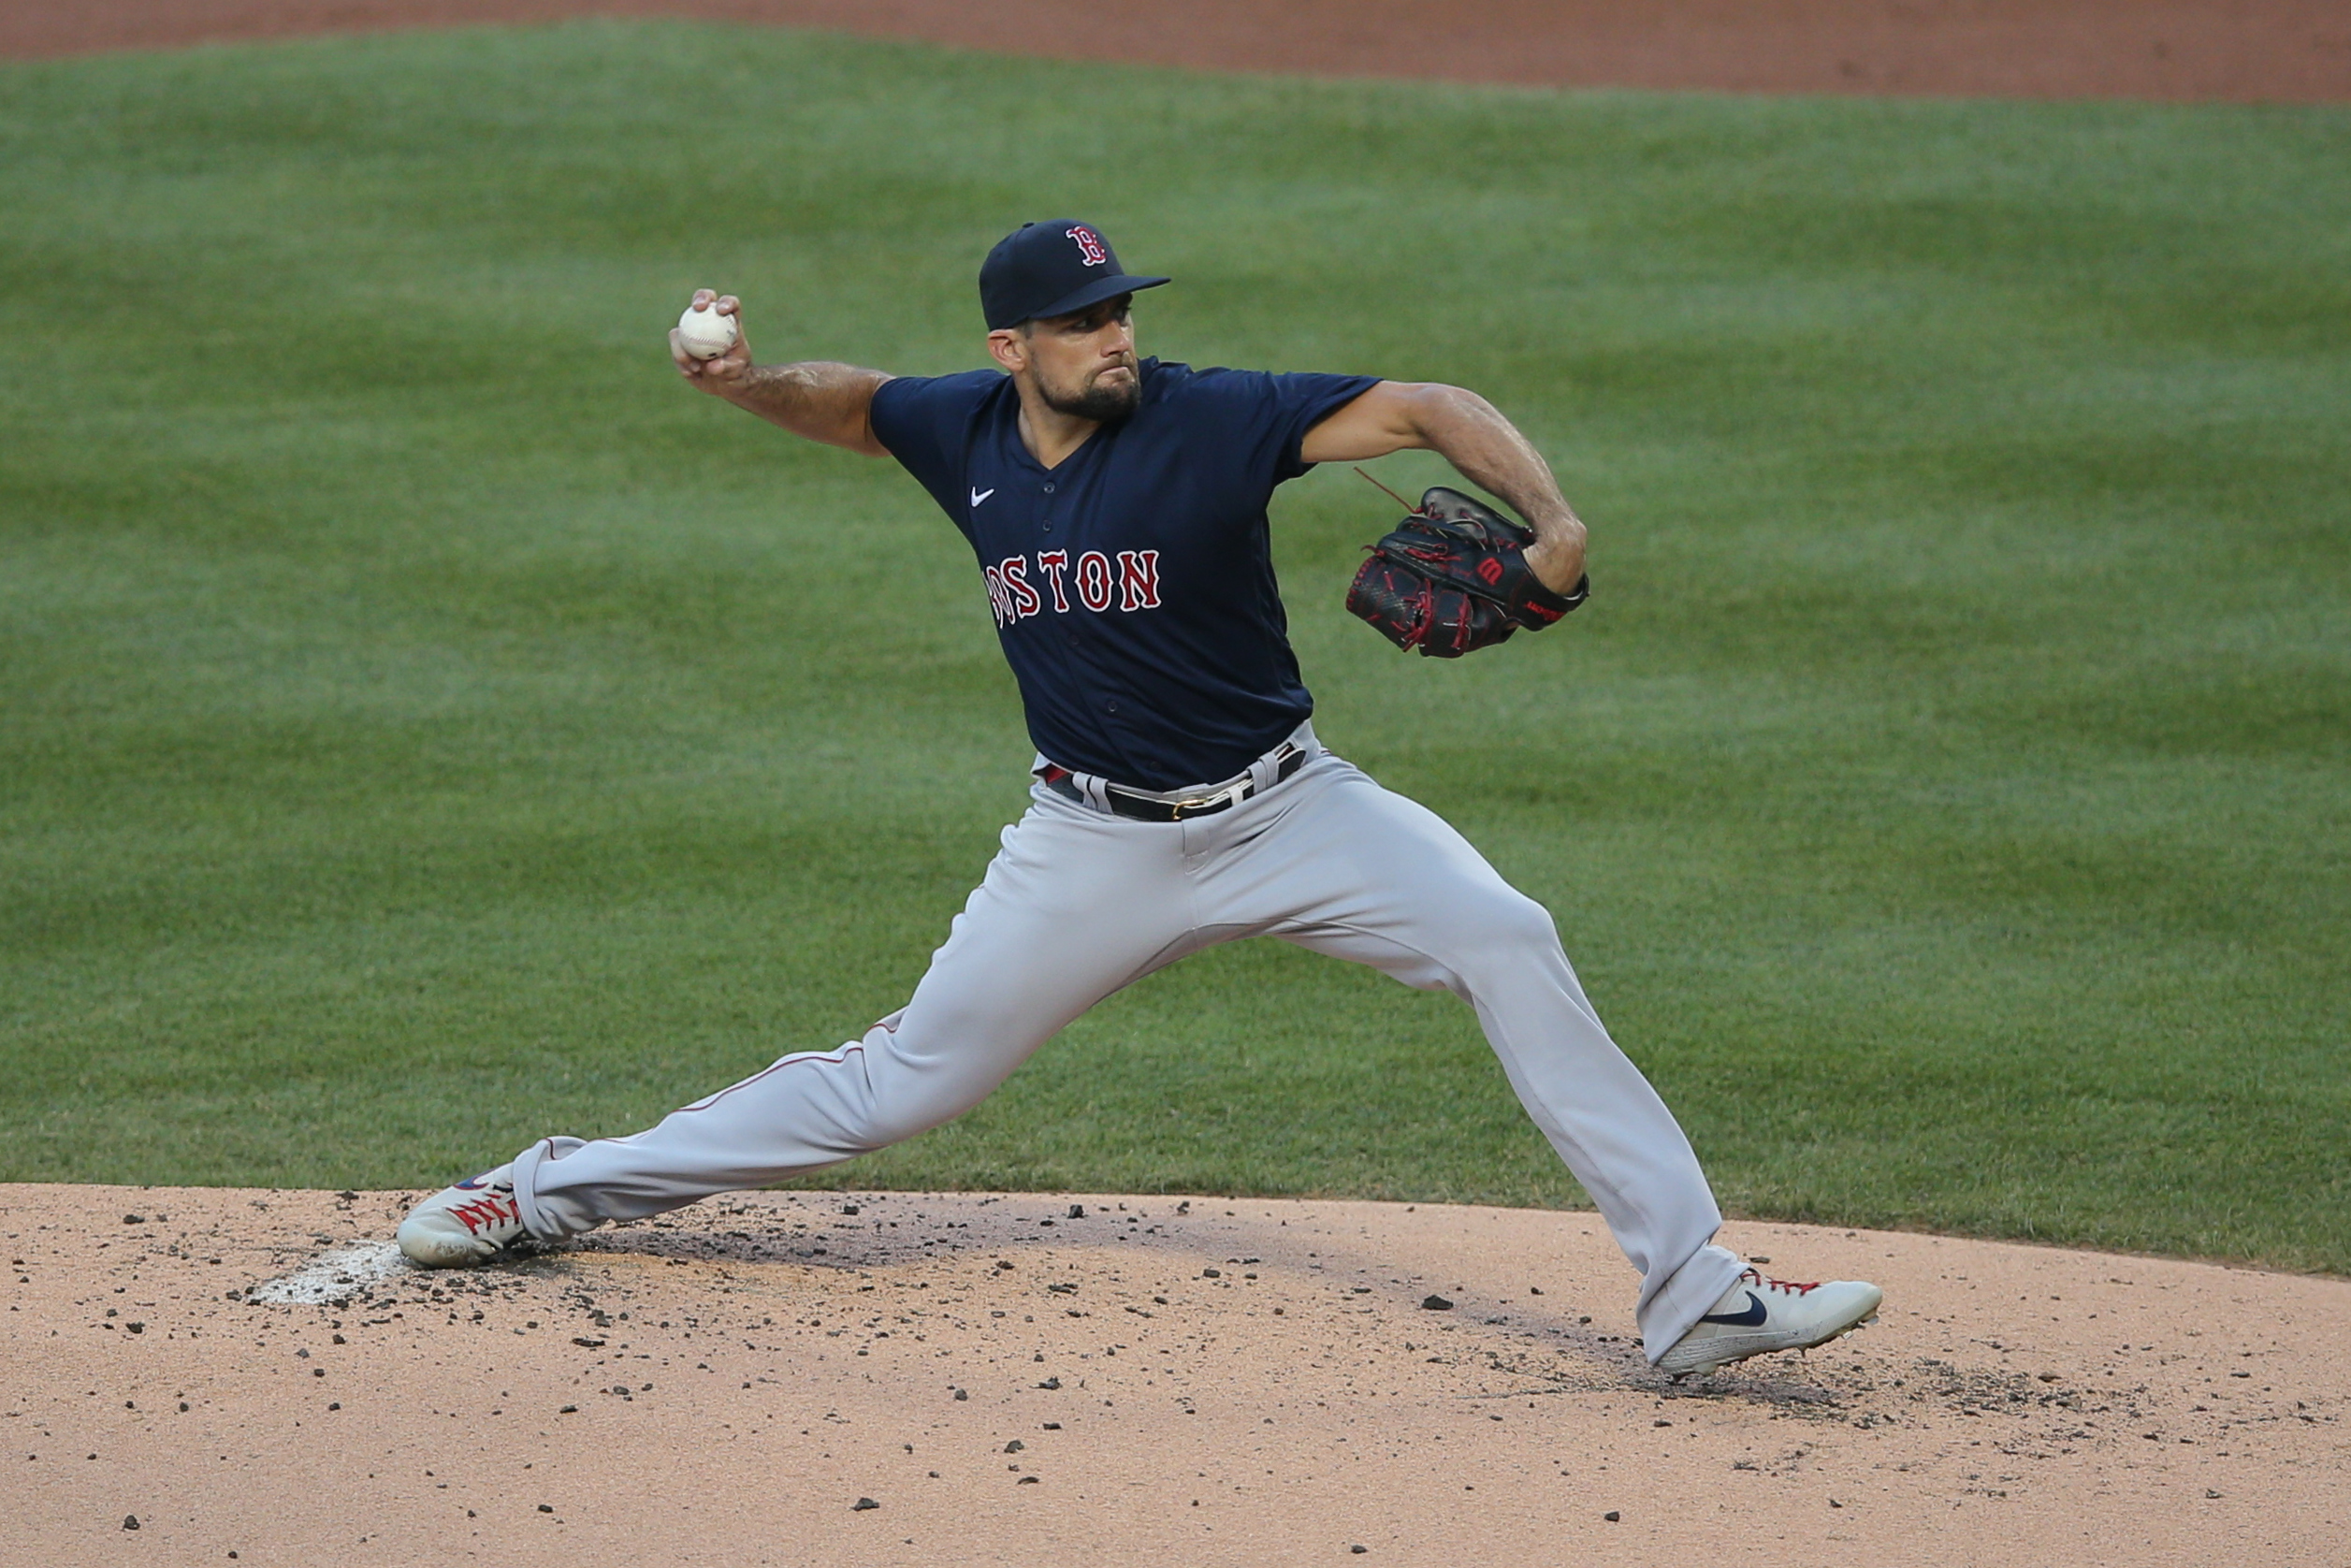 MLB: Boston Red Sox at New York Mets